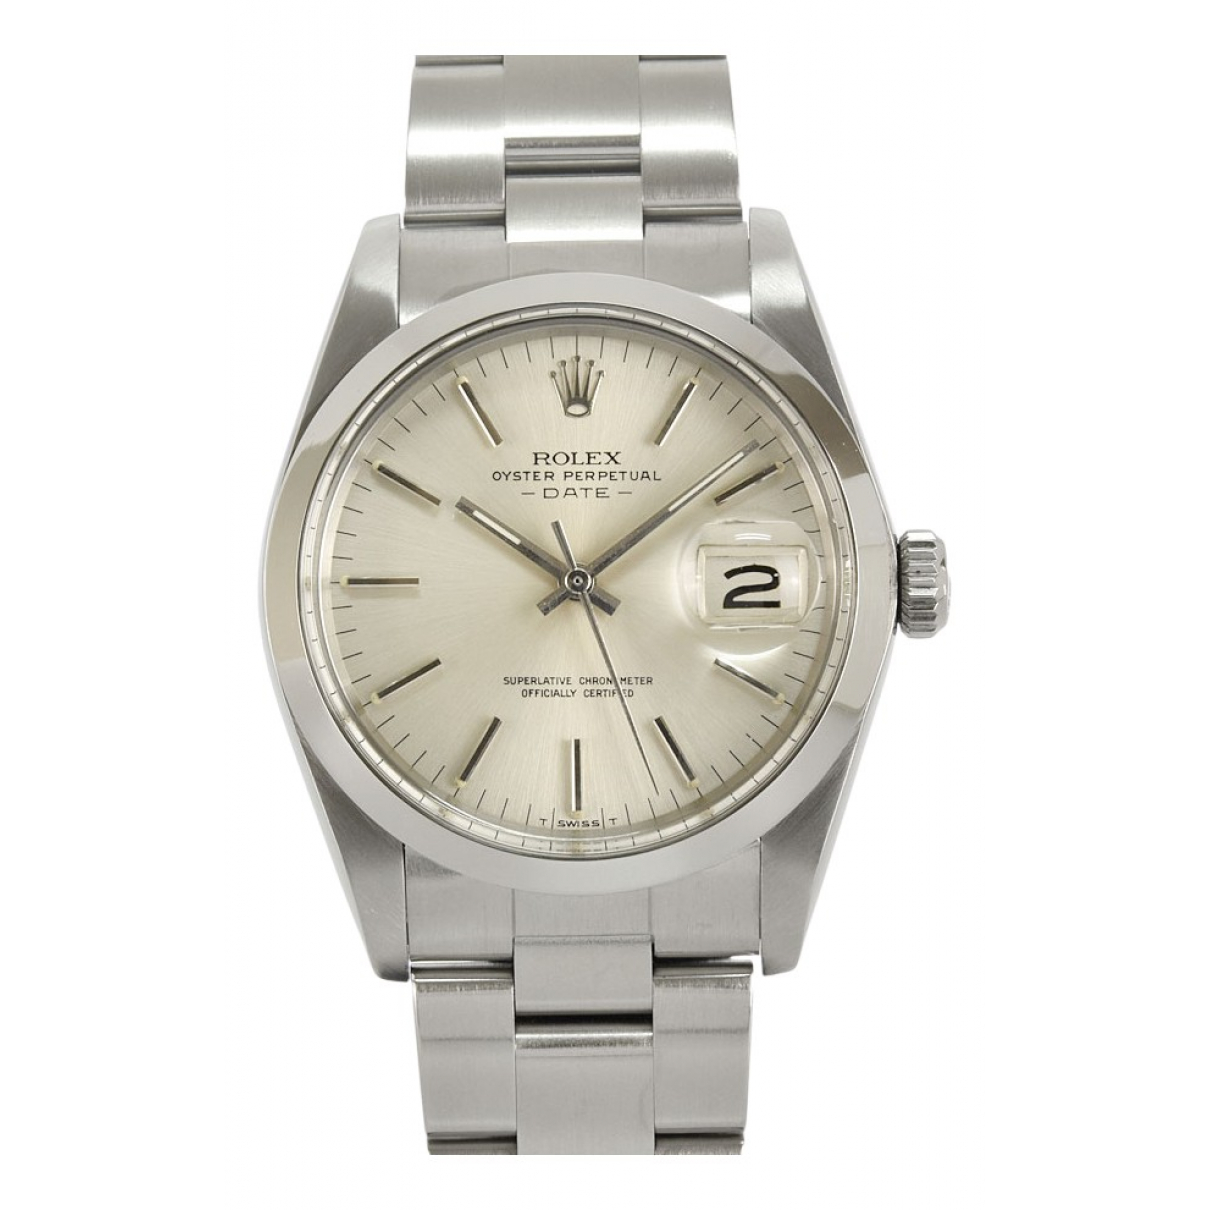 Rolex Oyster Perpetual 34mm Uhr in  Silber Stahl